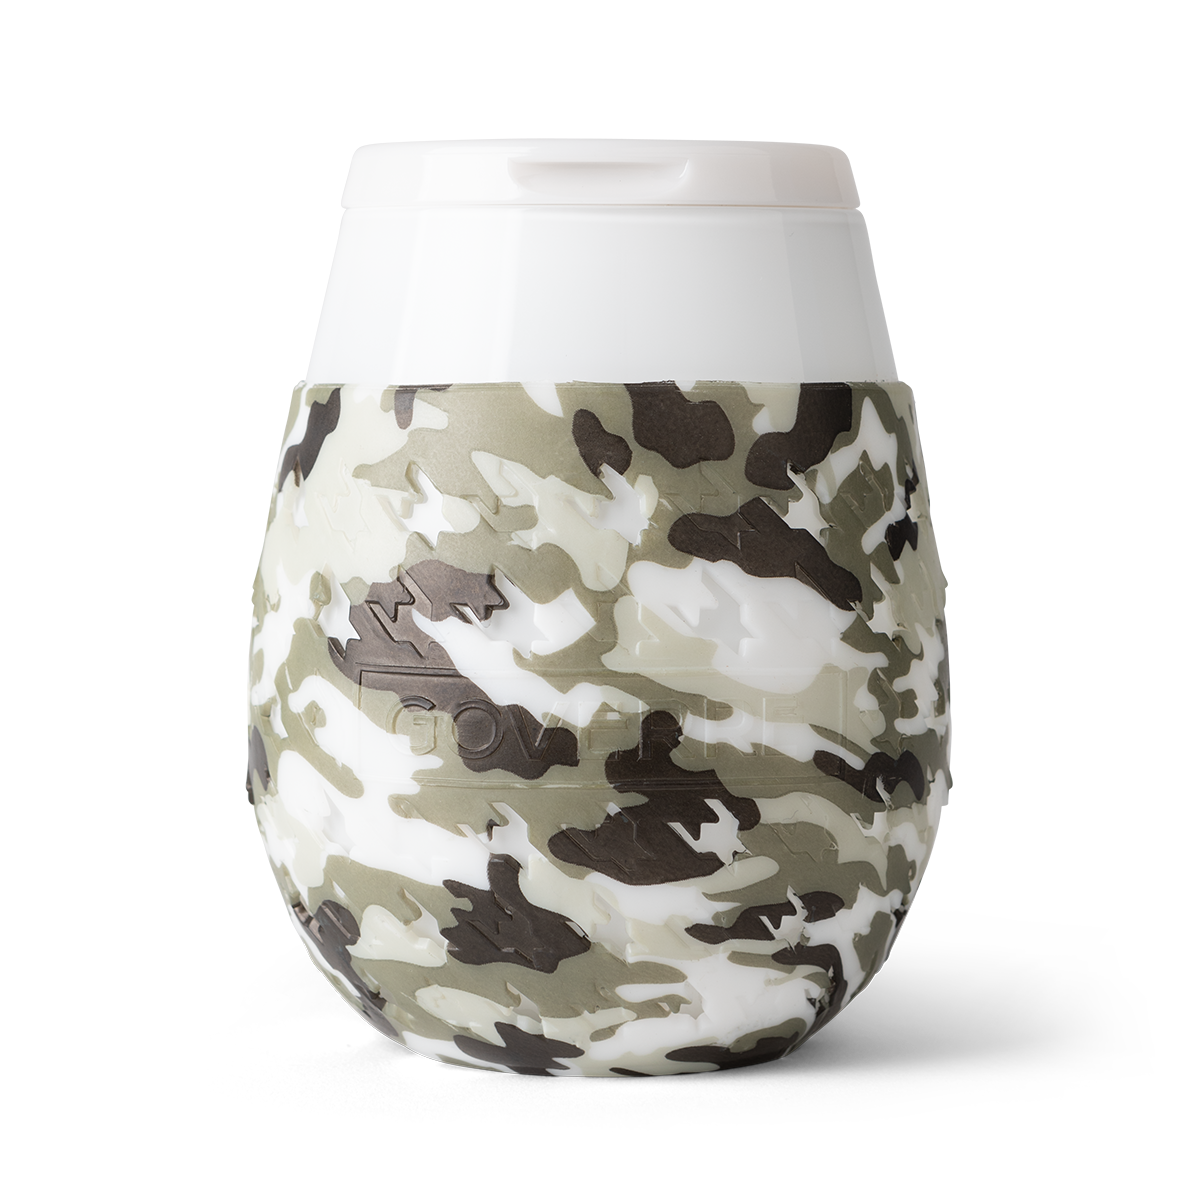 The Goverre Portable Stemless Wine Glass (in Camo) is perfect for pool side, boats, lake side, beaches and more. It's our go-to outdoor wine glass. Why we love it? It's actually made of glass! The silicone sleeve makes it easy to hold and not slip. And the drink-through lid allows you to be on the go! Holds 17oz.